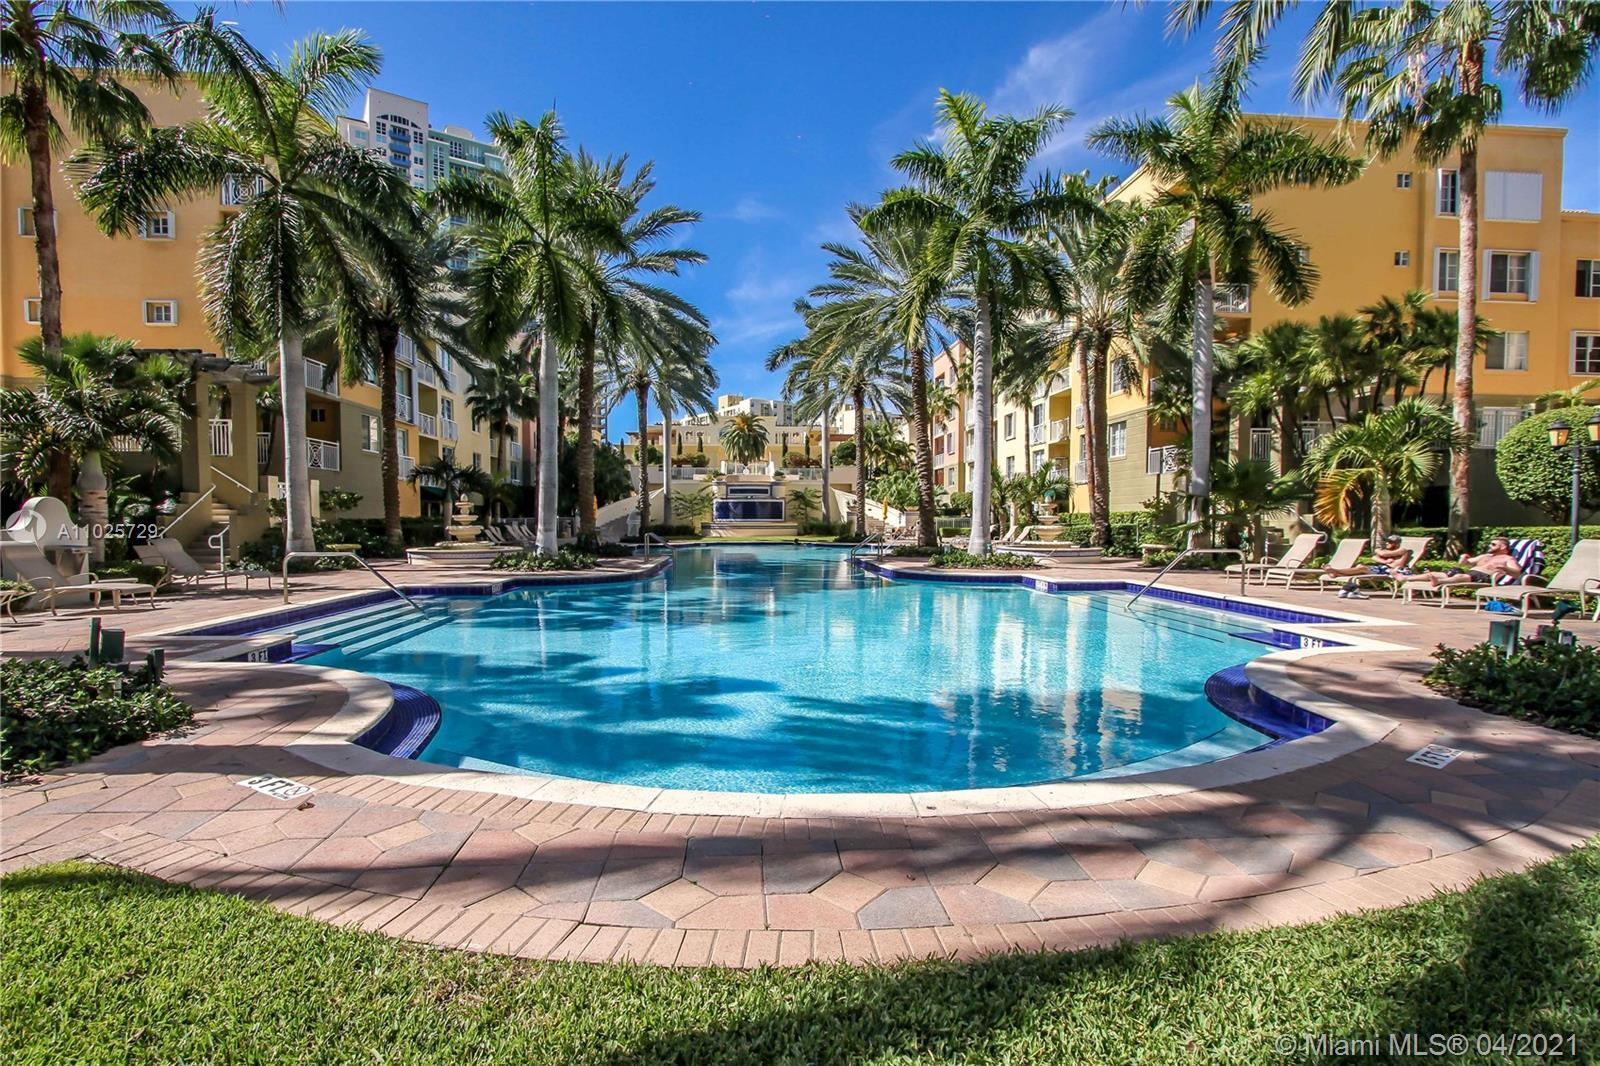 Beautiful 2 bedroom/ 2 bathroom unit with southern exposure overlooking the Grand Piazza pool area.